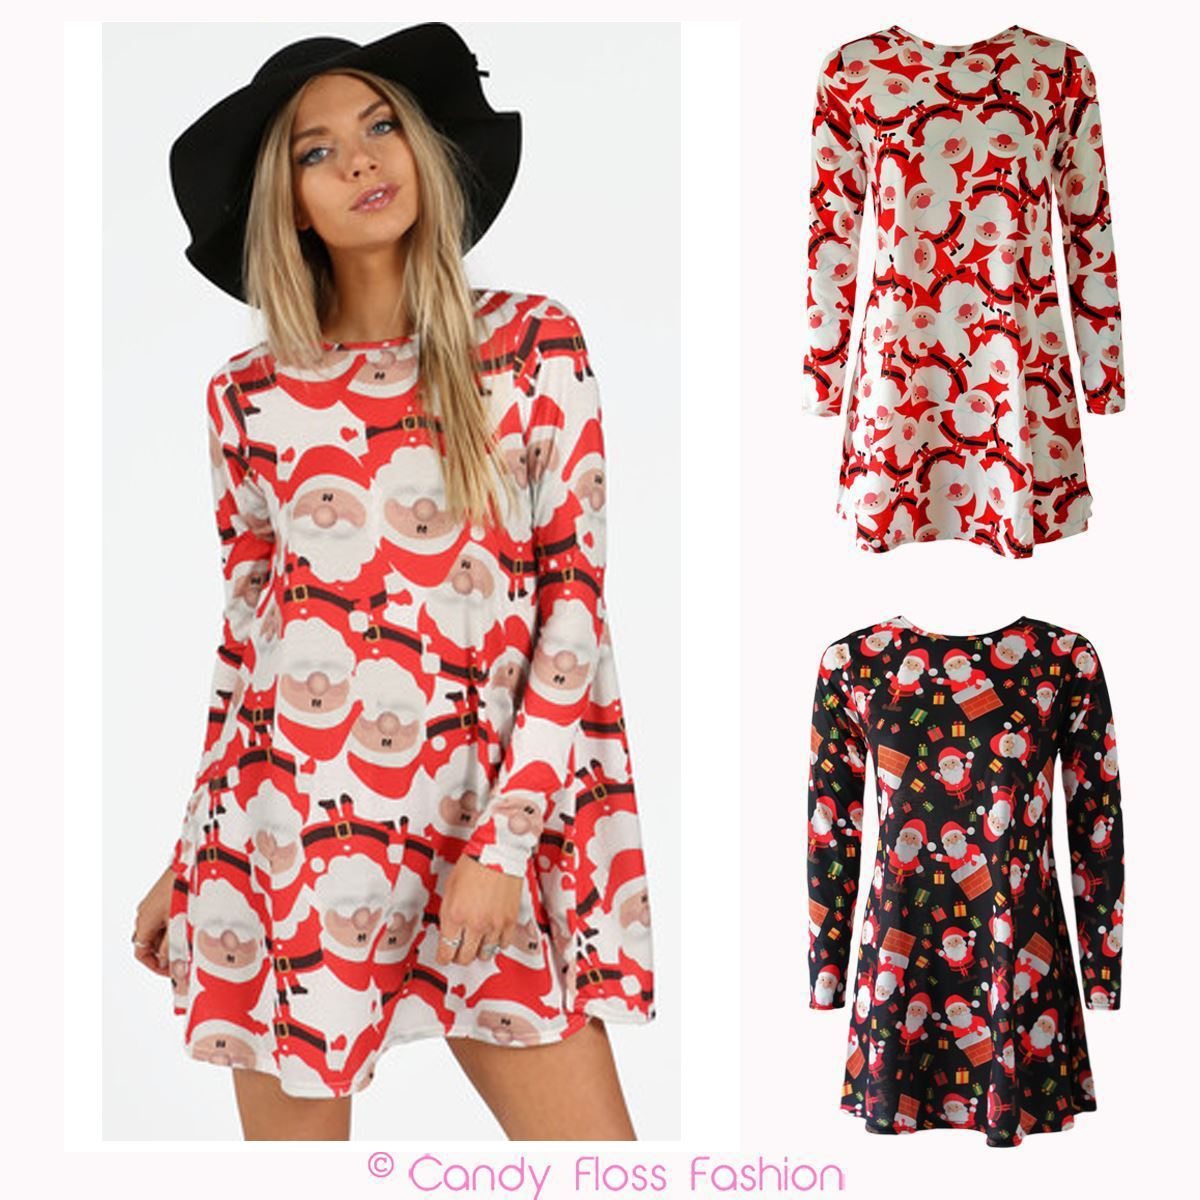 Jumpsuits party dresses day dresses skirts tops jackets hoodies